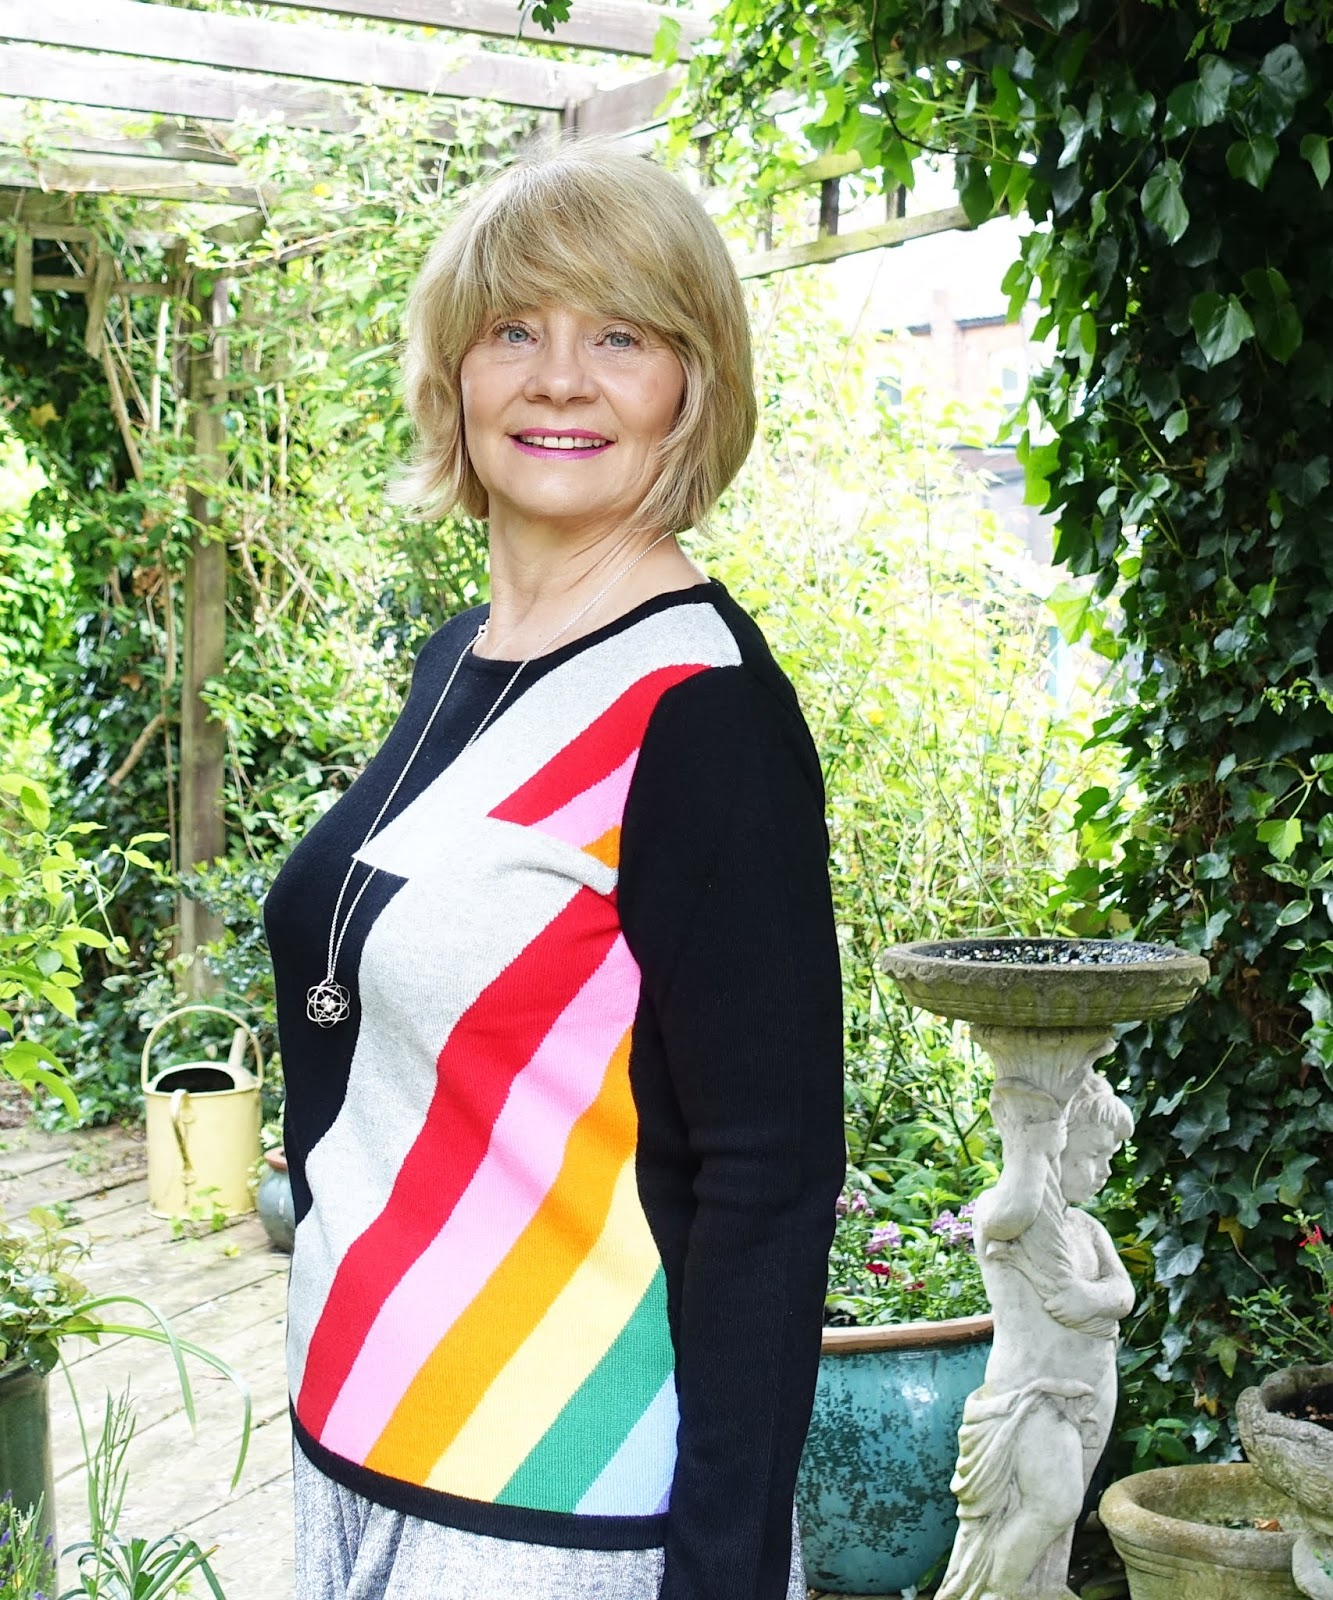 Over 50s style blog Is This Mutton? on the joys of the Bowie stripe cashmere jumper